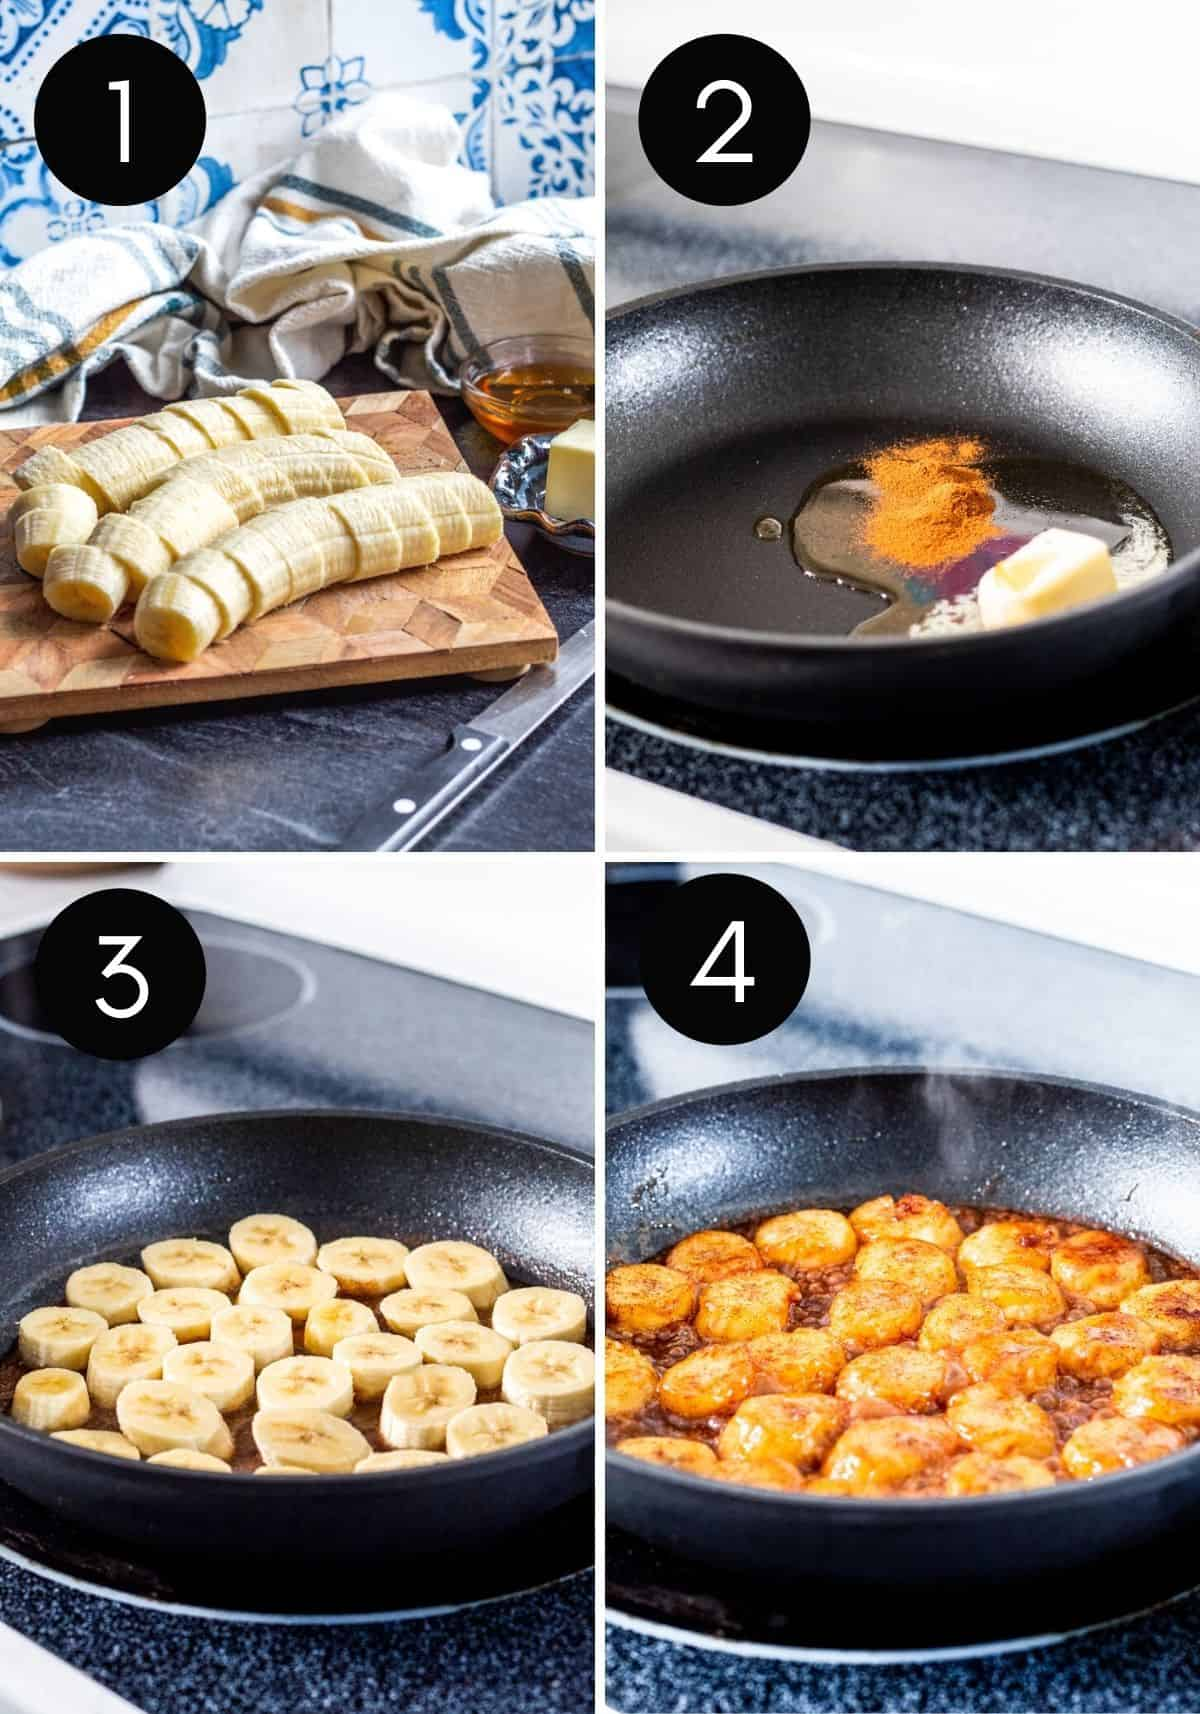 Four image prep collage showing sliced bananas and bananas being fried in pan.